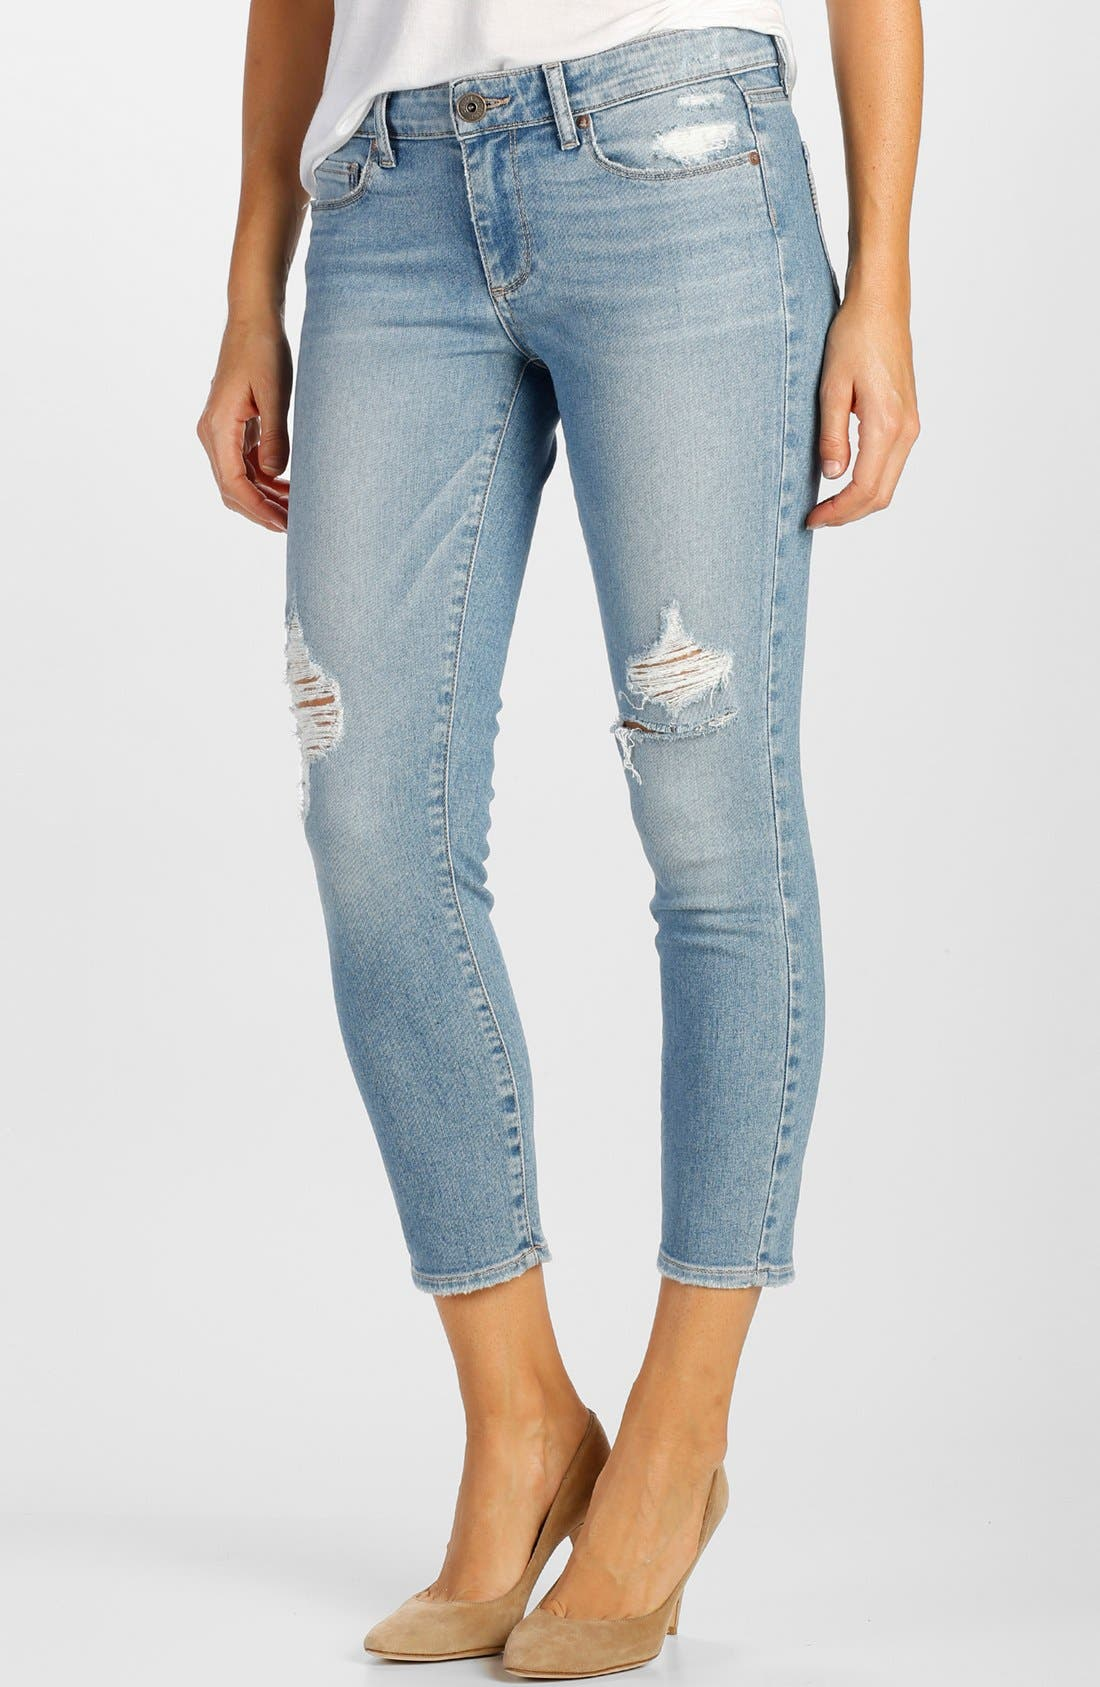 Alternate Image 1 Selected - Paige Denim 'Verdugo' Crop Skinny Jeans (Serena Destructed)